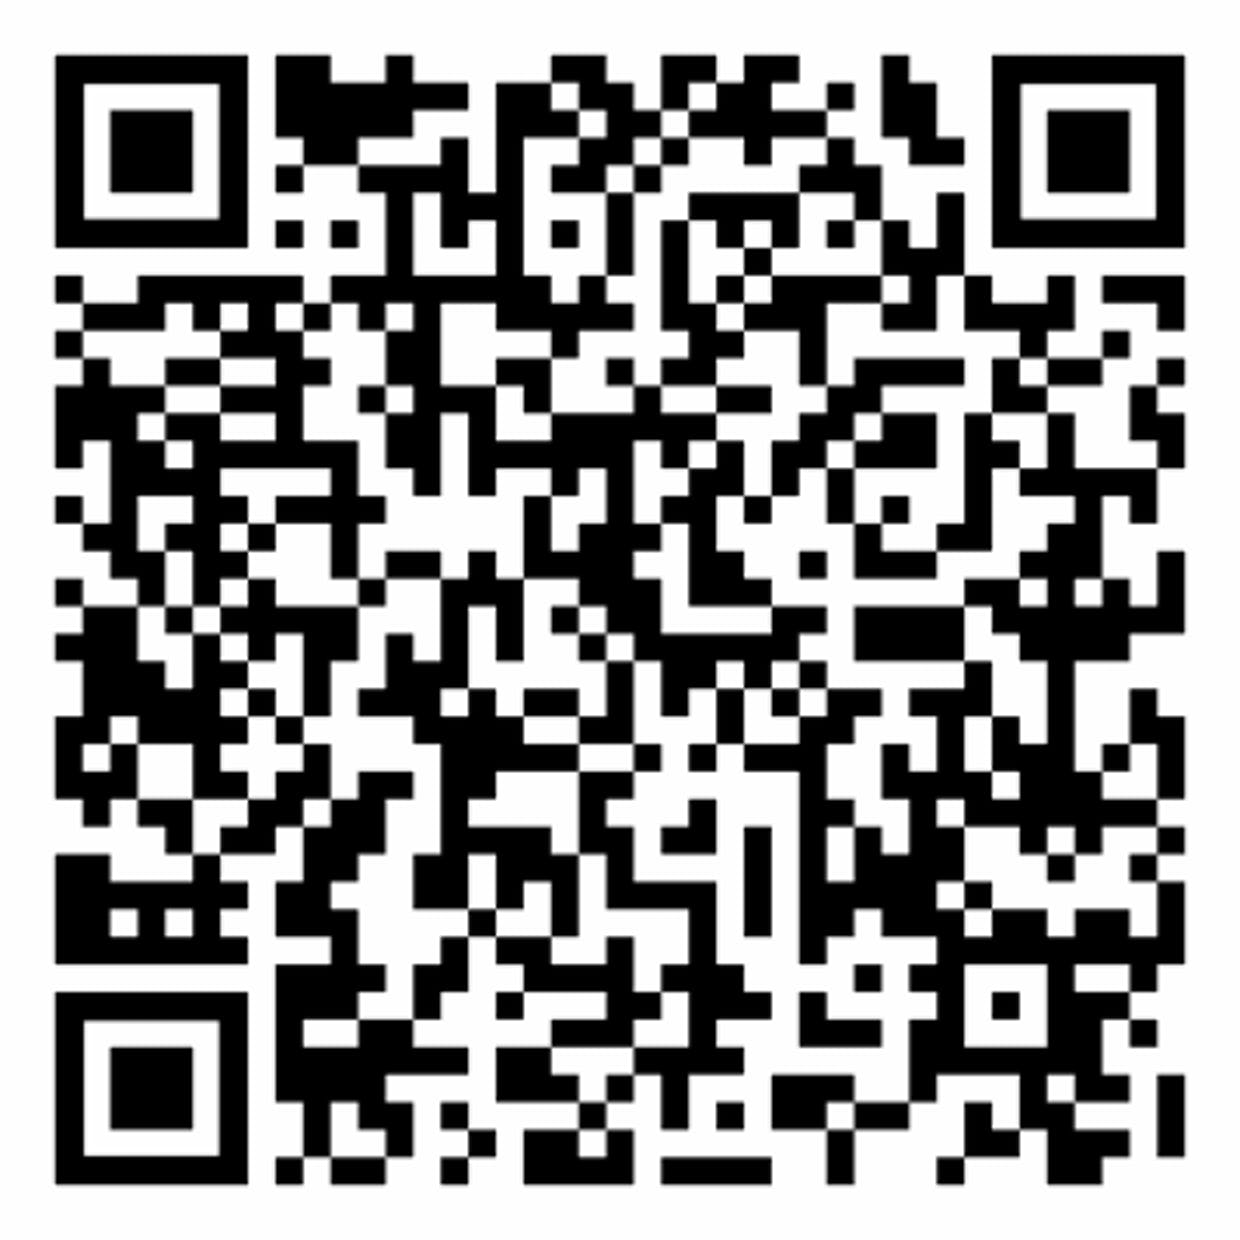 QR Code for the application